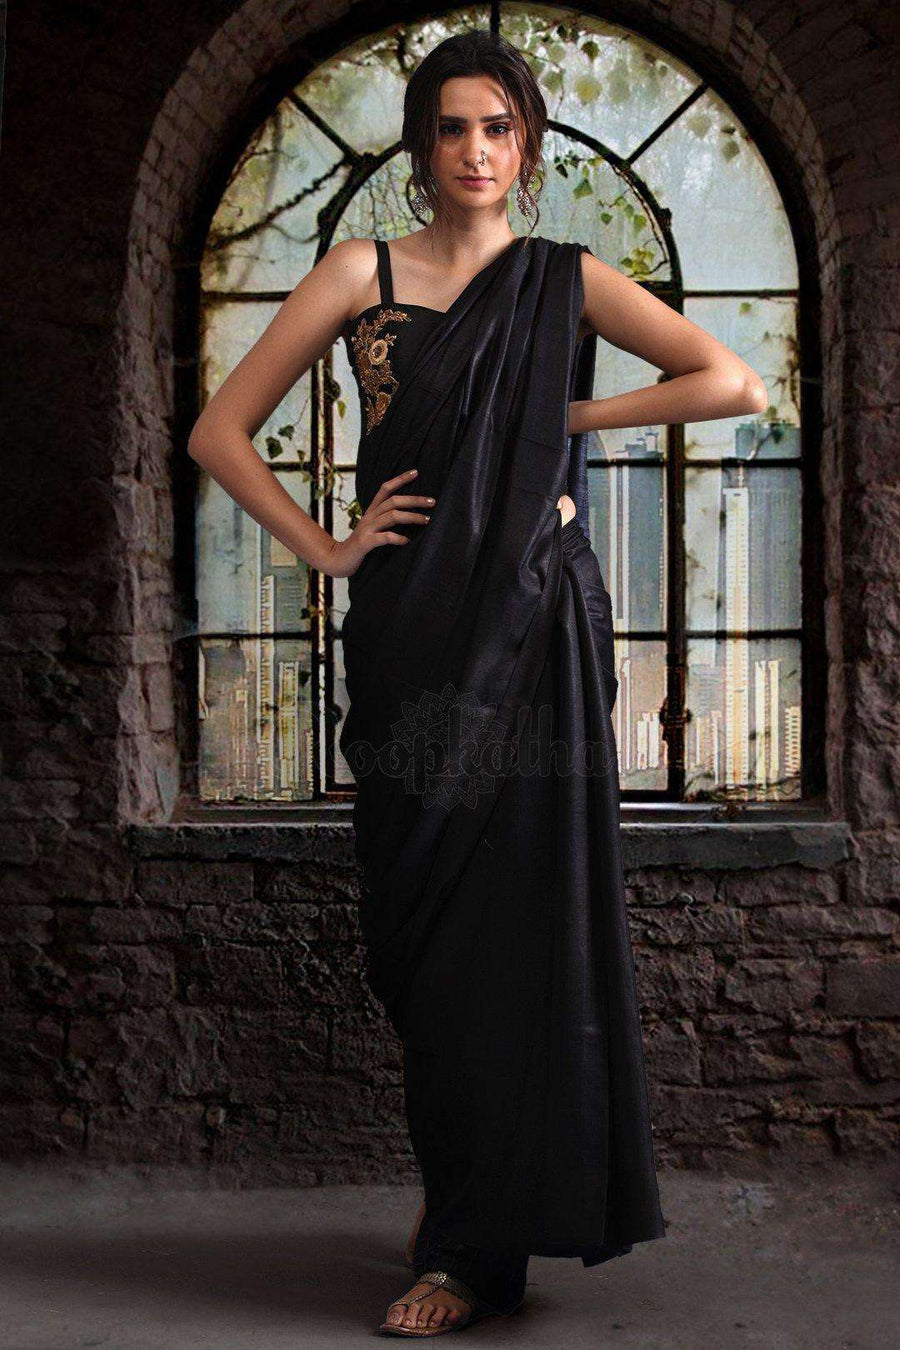 Black Gheecha Saree With Grey Pallu Akasha Roopkatha - A Story of Art